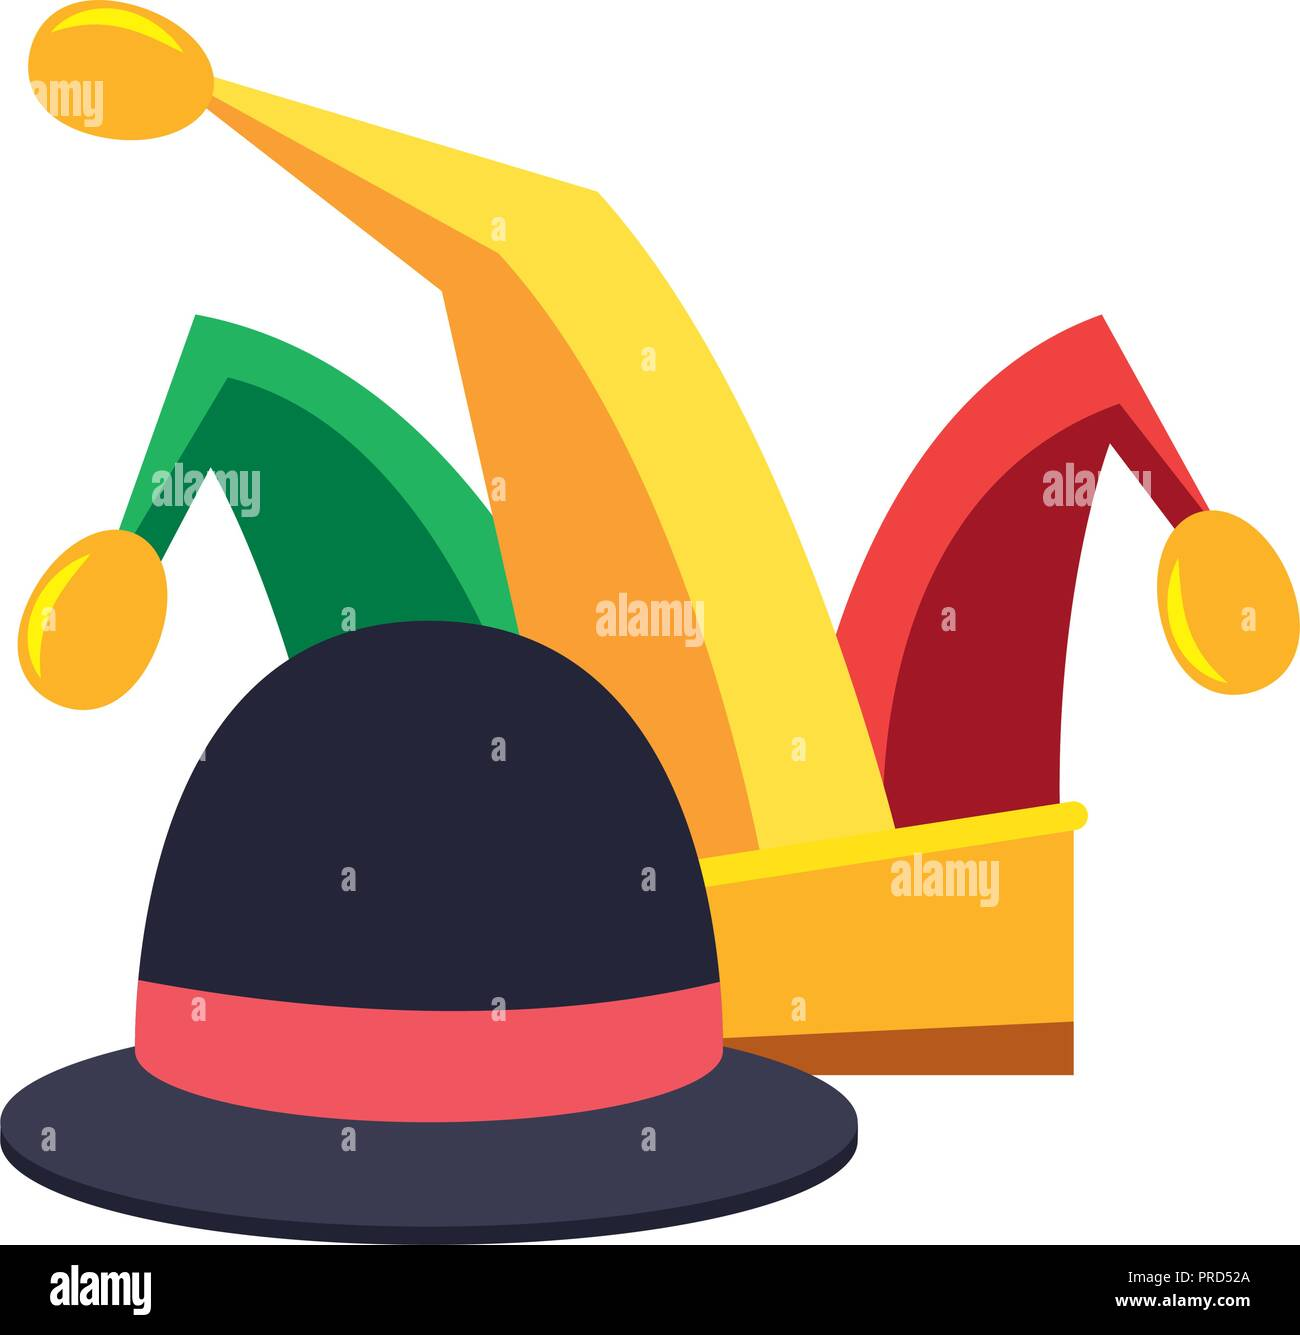 cb4c85abe3031 jester hat and classic bowler carnival festival vector illustration - Stock  Image